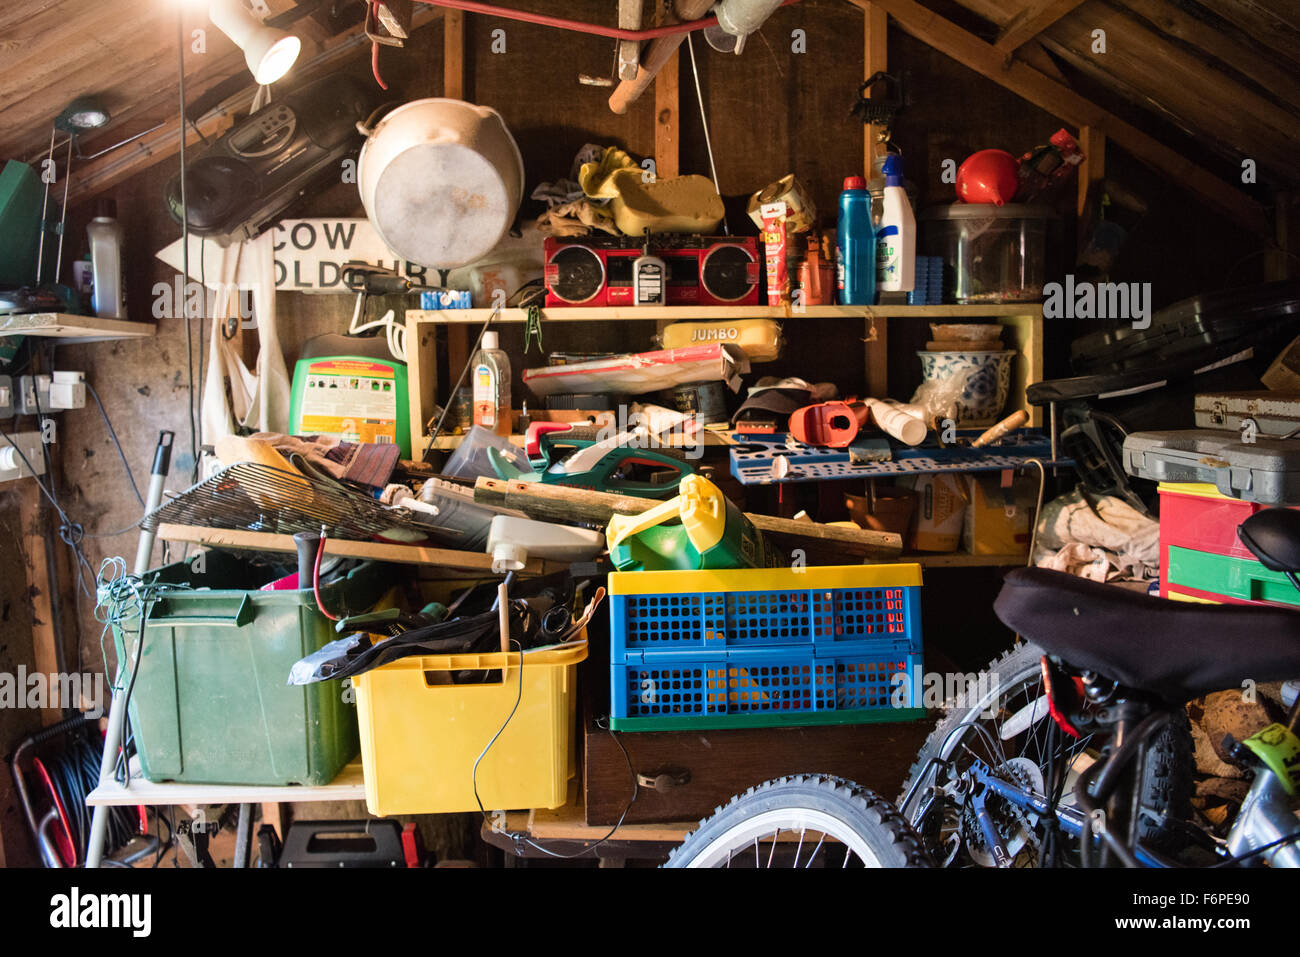 Inside A Messy And Cluttered Wooden Garage Shed With Tools